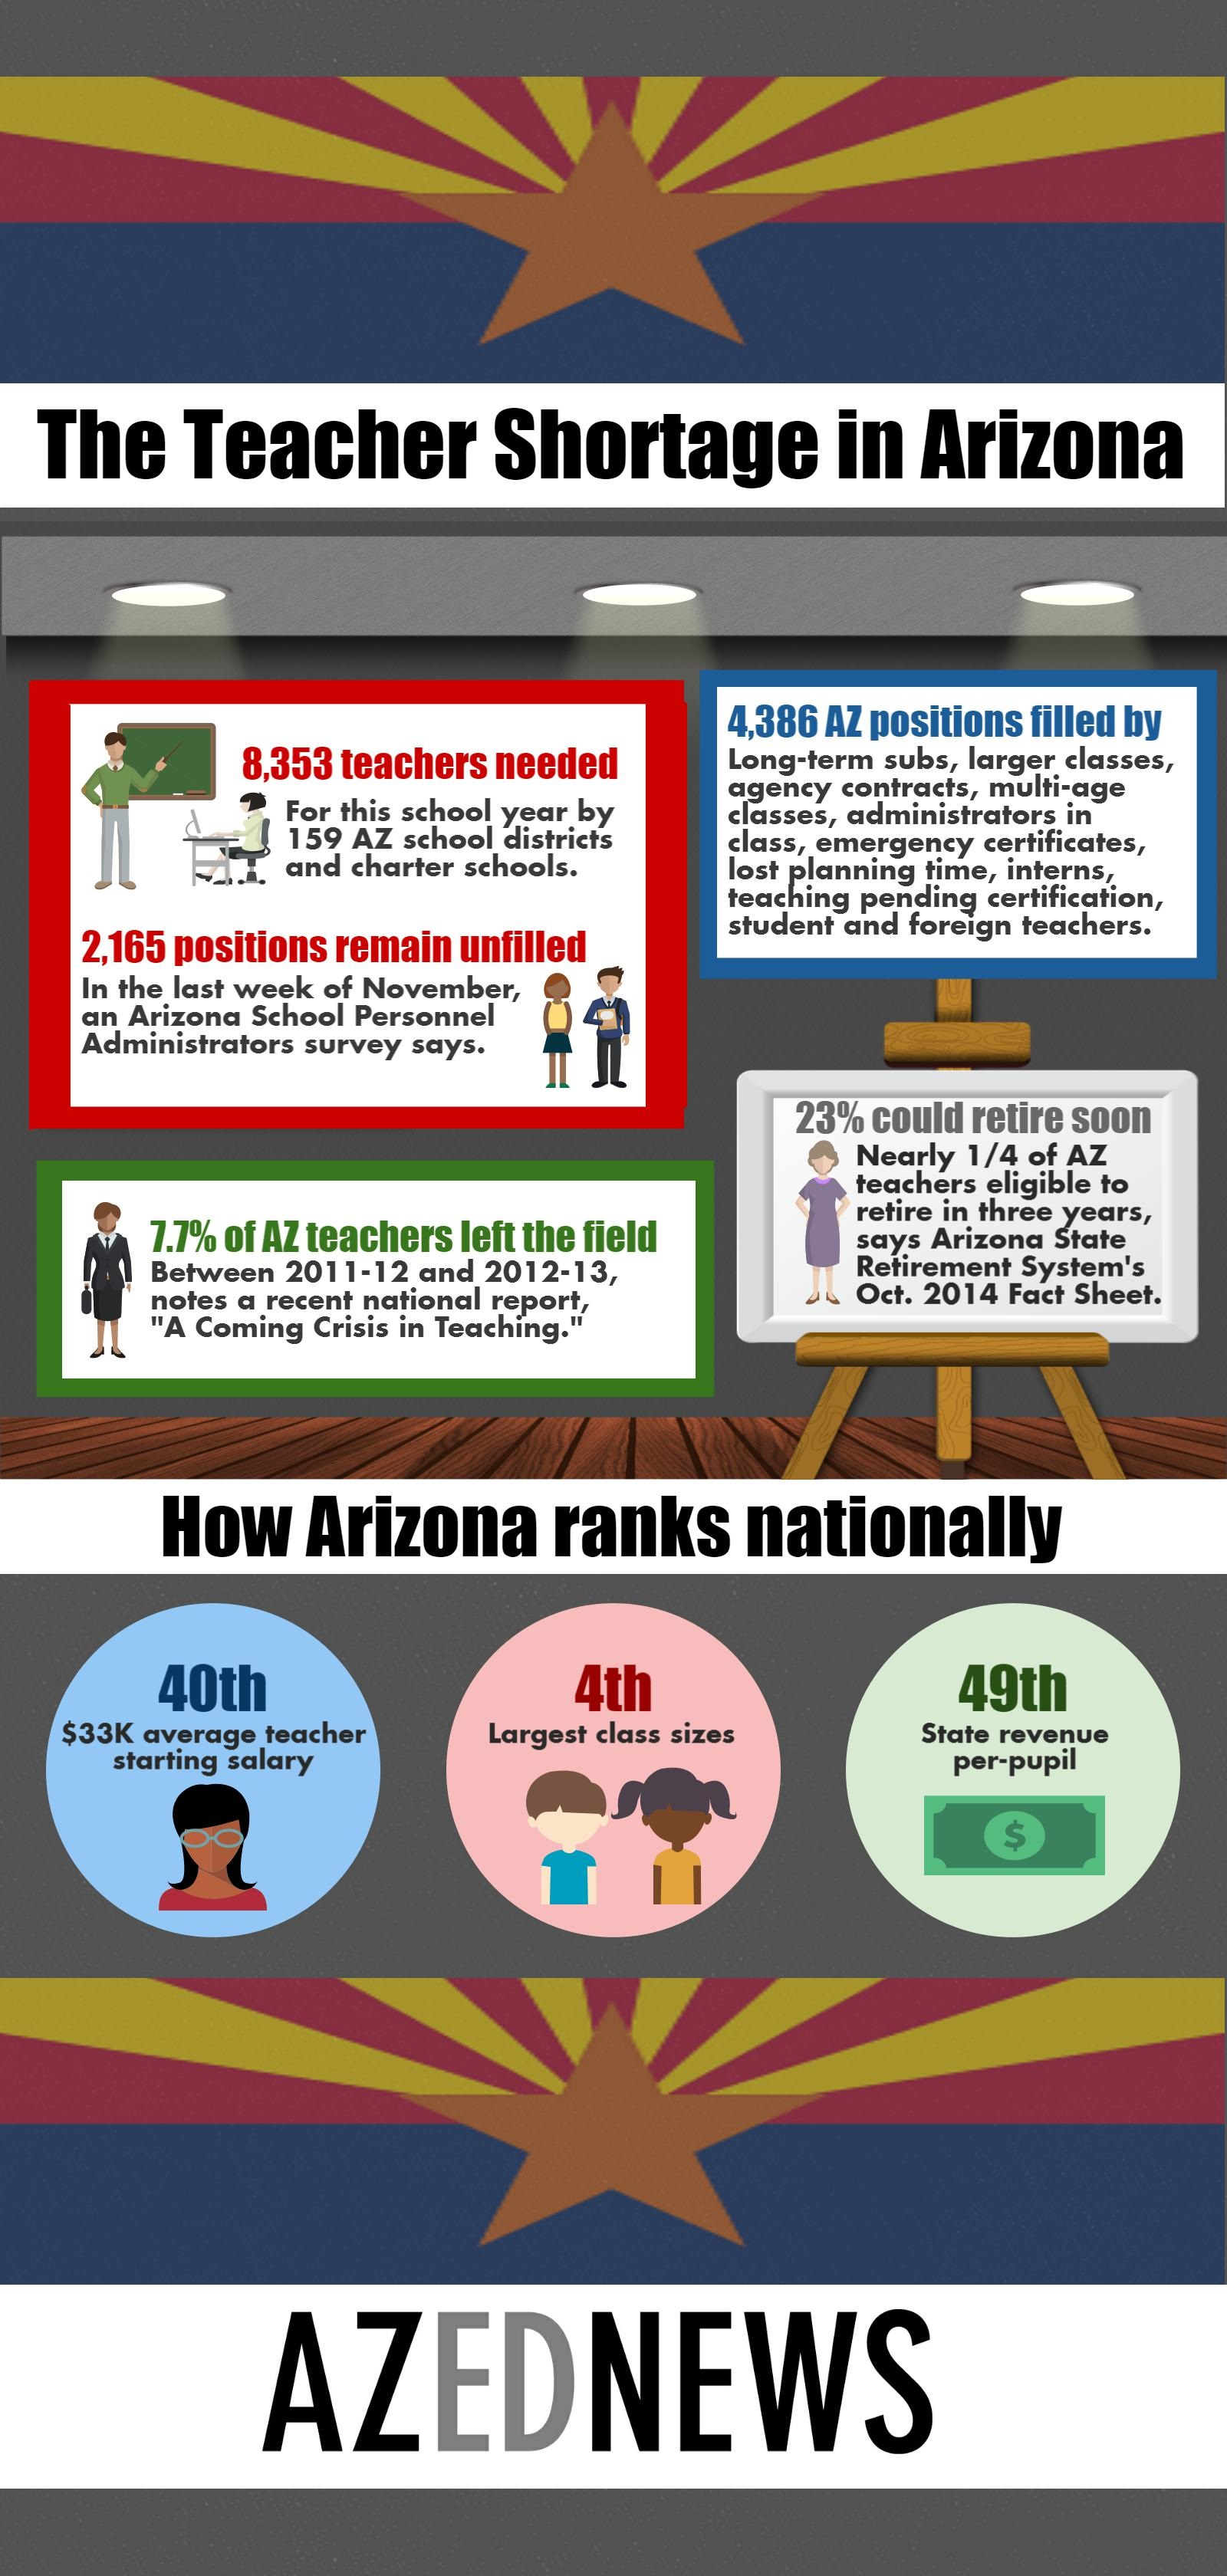 Governor, legislators urged to make teacher pay raises a priority AZEdNewsArizonaTeacherShortageInfoGraphic